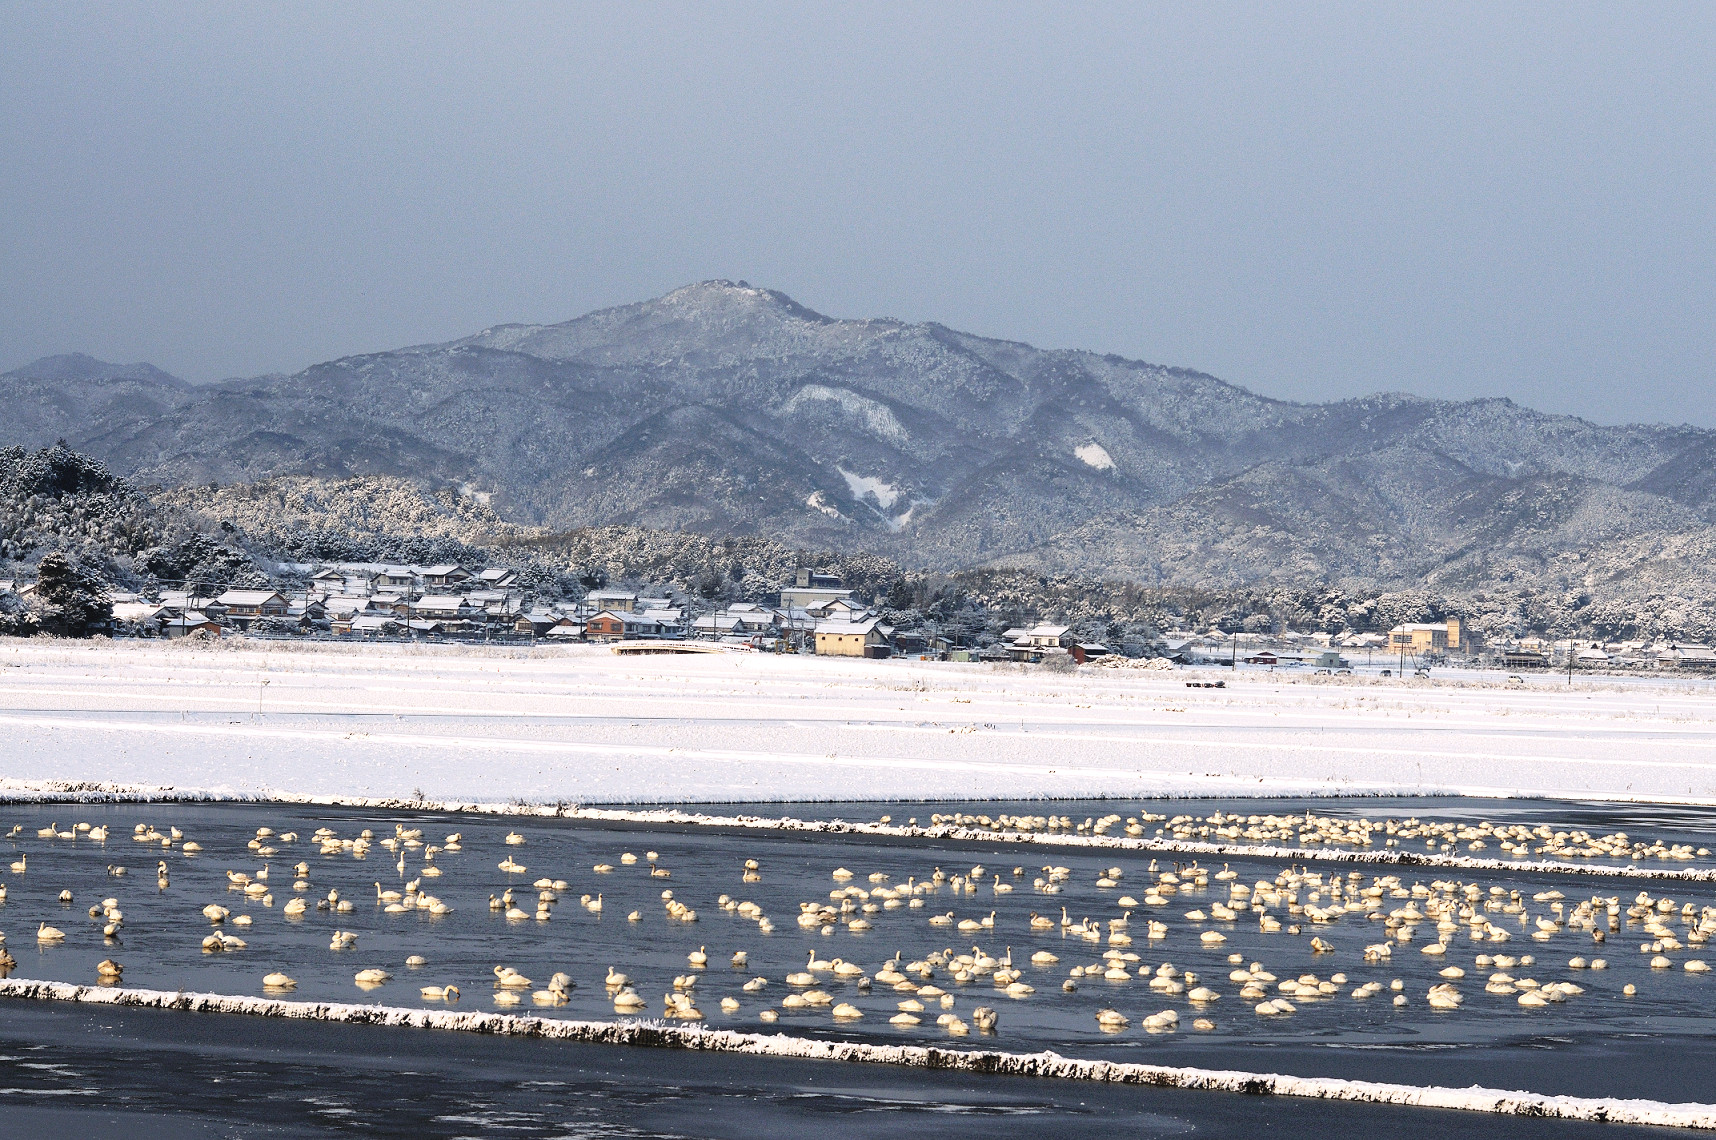 wintering swans in Yasugi City